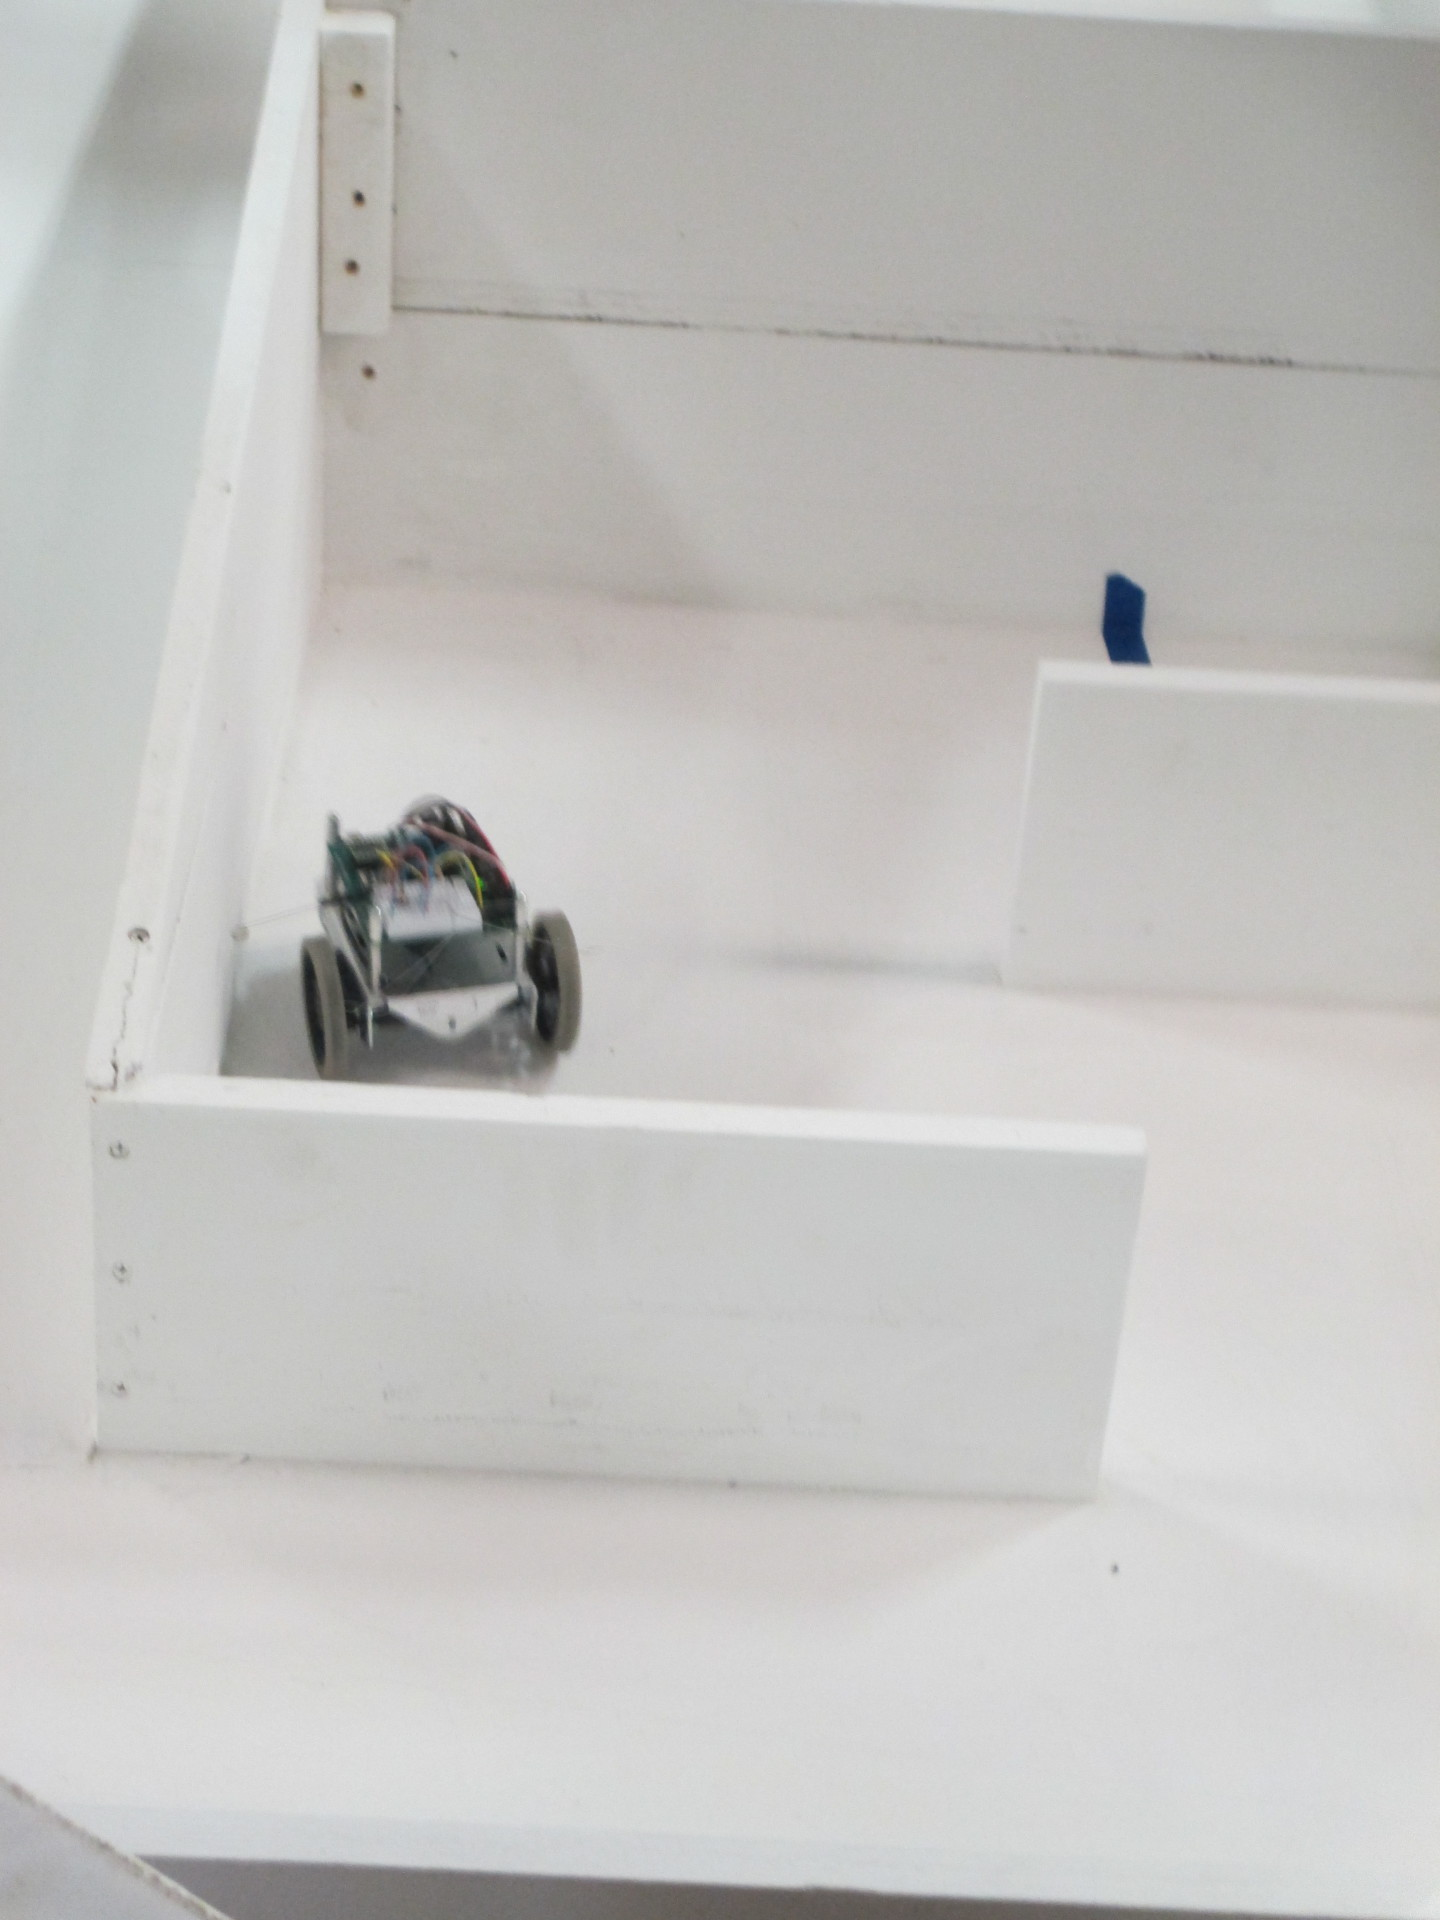 A tactile maze bot making its way through the maze